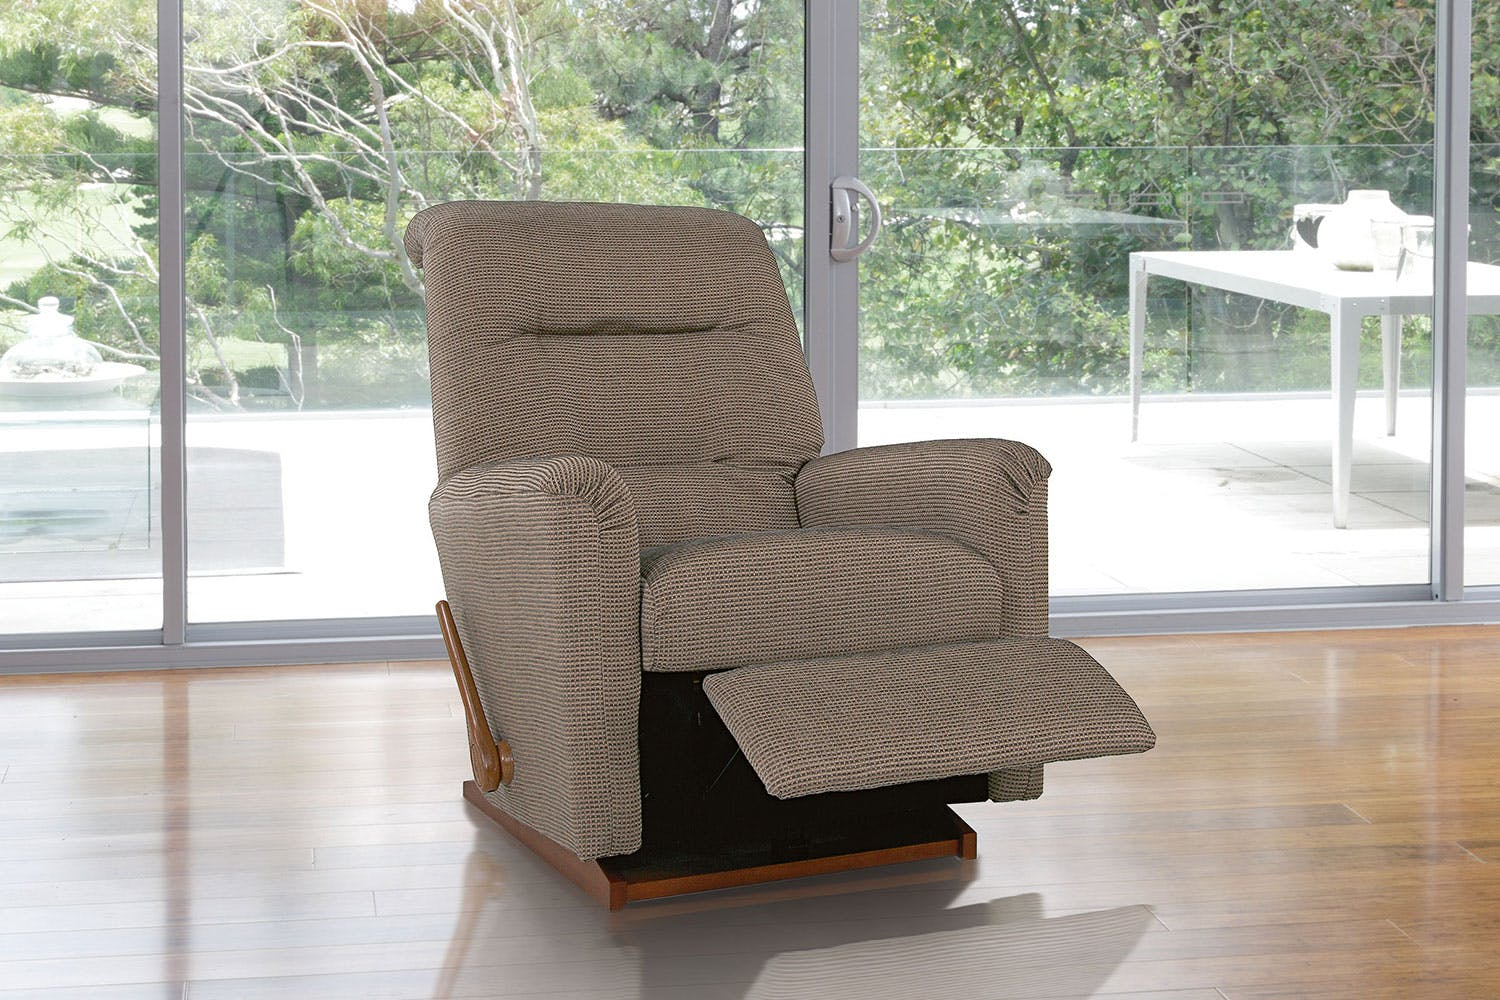 idaho fabric recliner chair by la z boy harvey norman new zealand